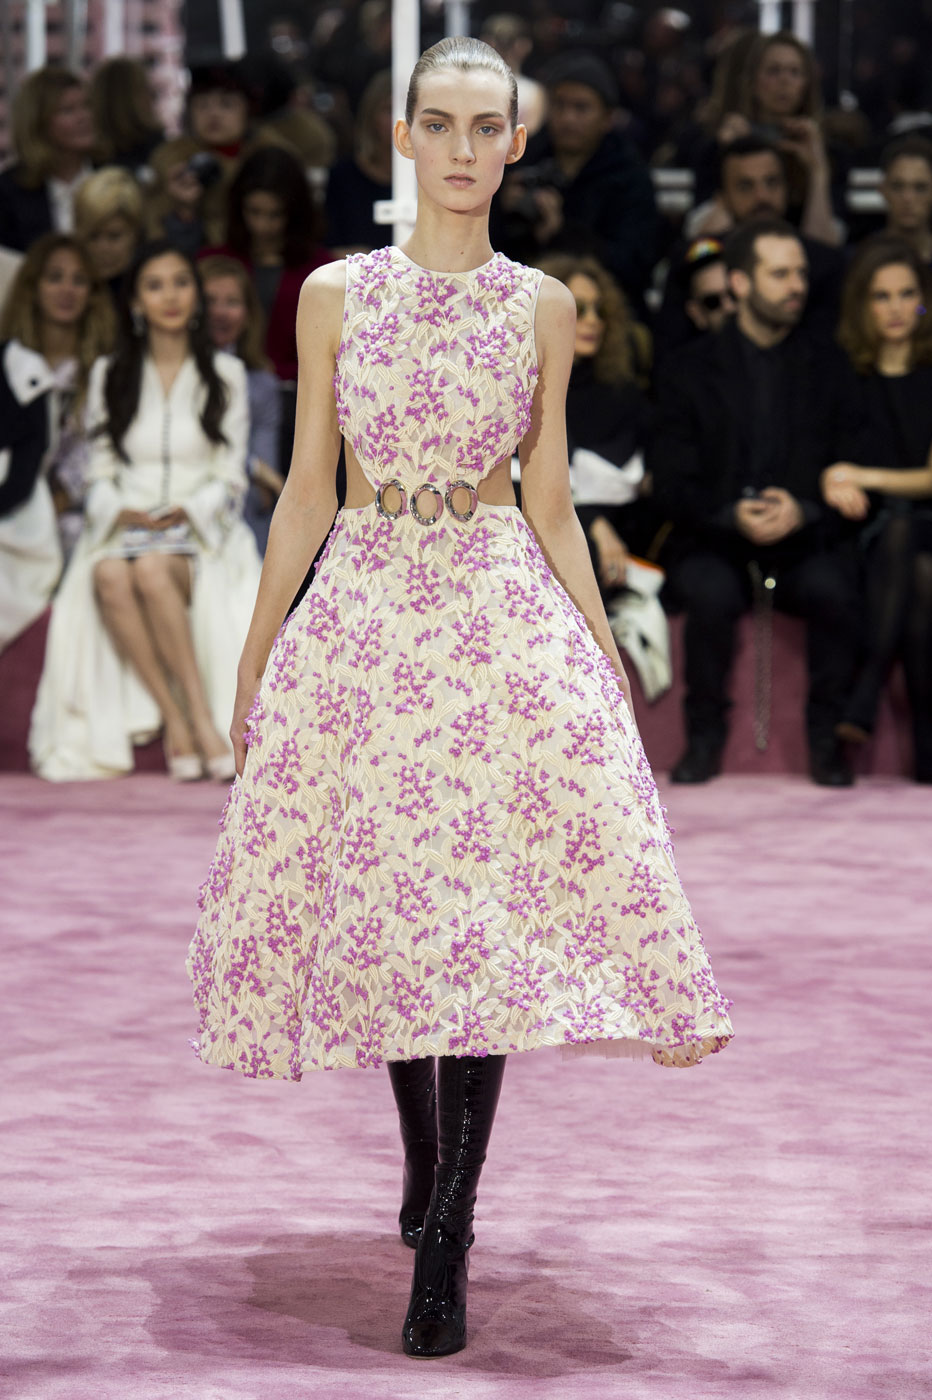 Christian-Dior-fashion-runway-show-haute-couture-paris-spring-summer-2015-the-impression-037